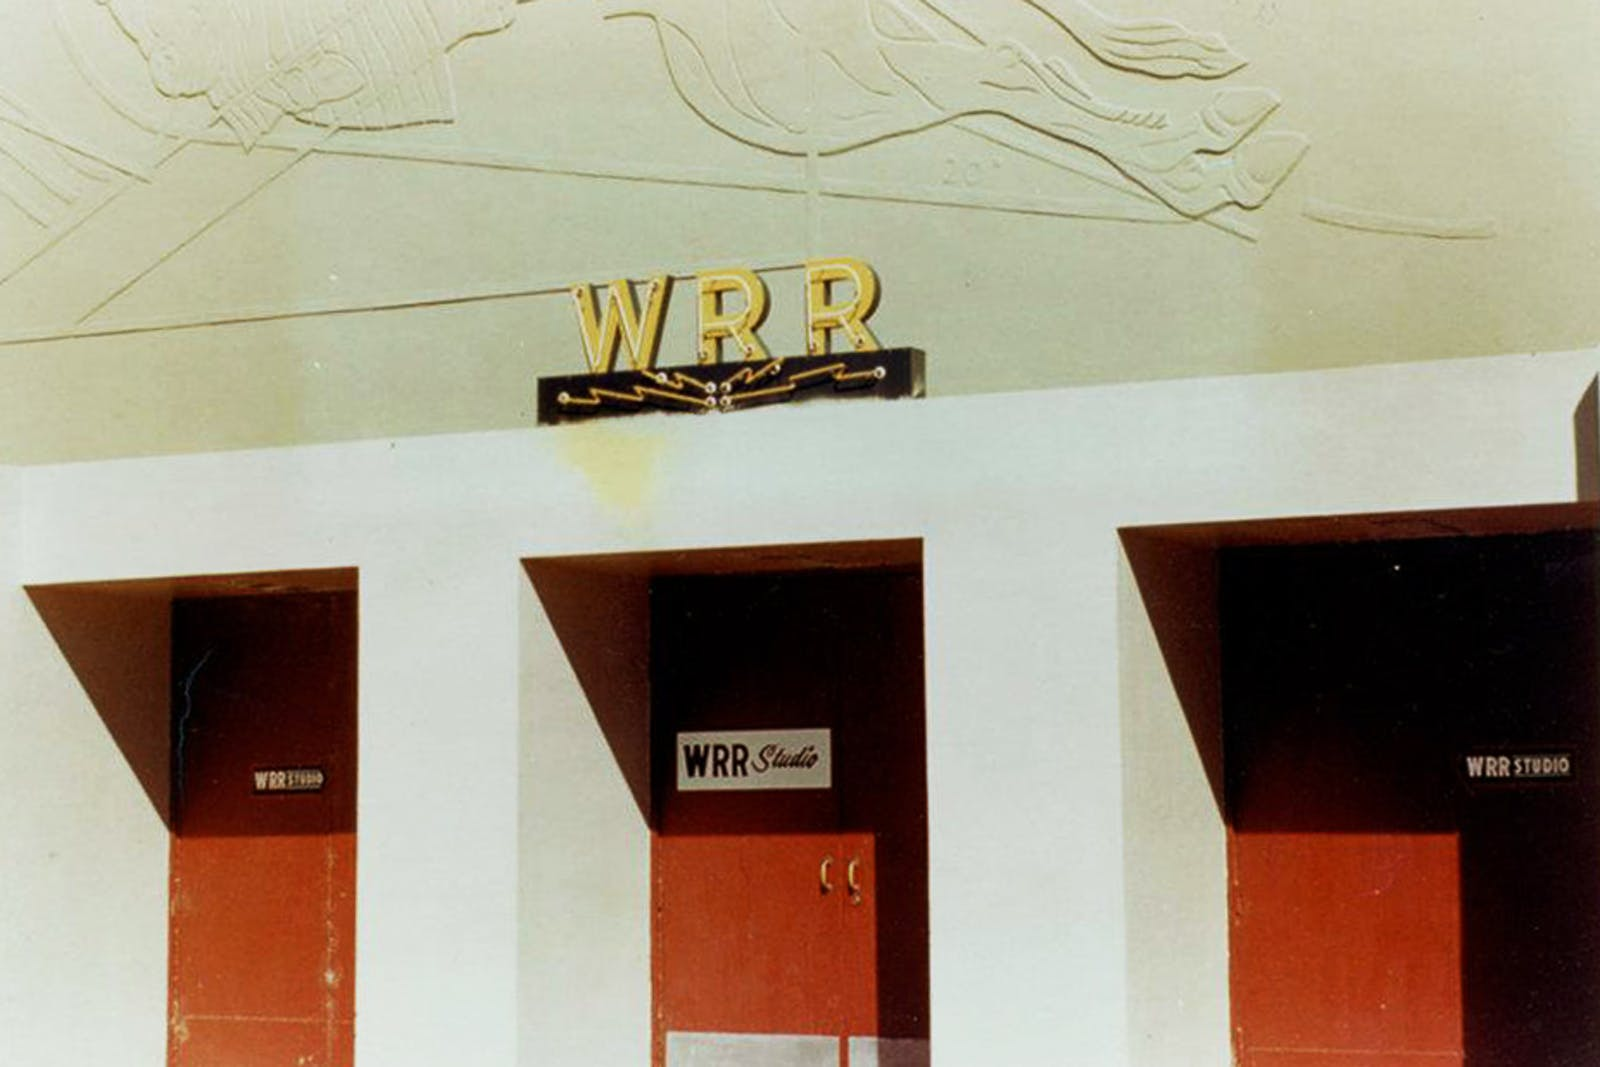 WRR-FM-Police-Fire-building